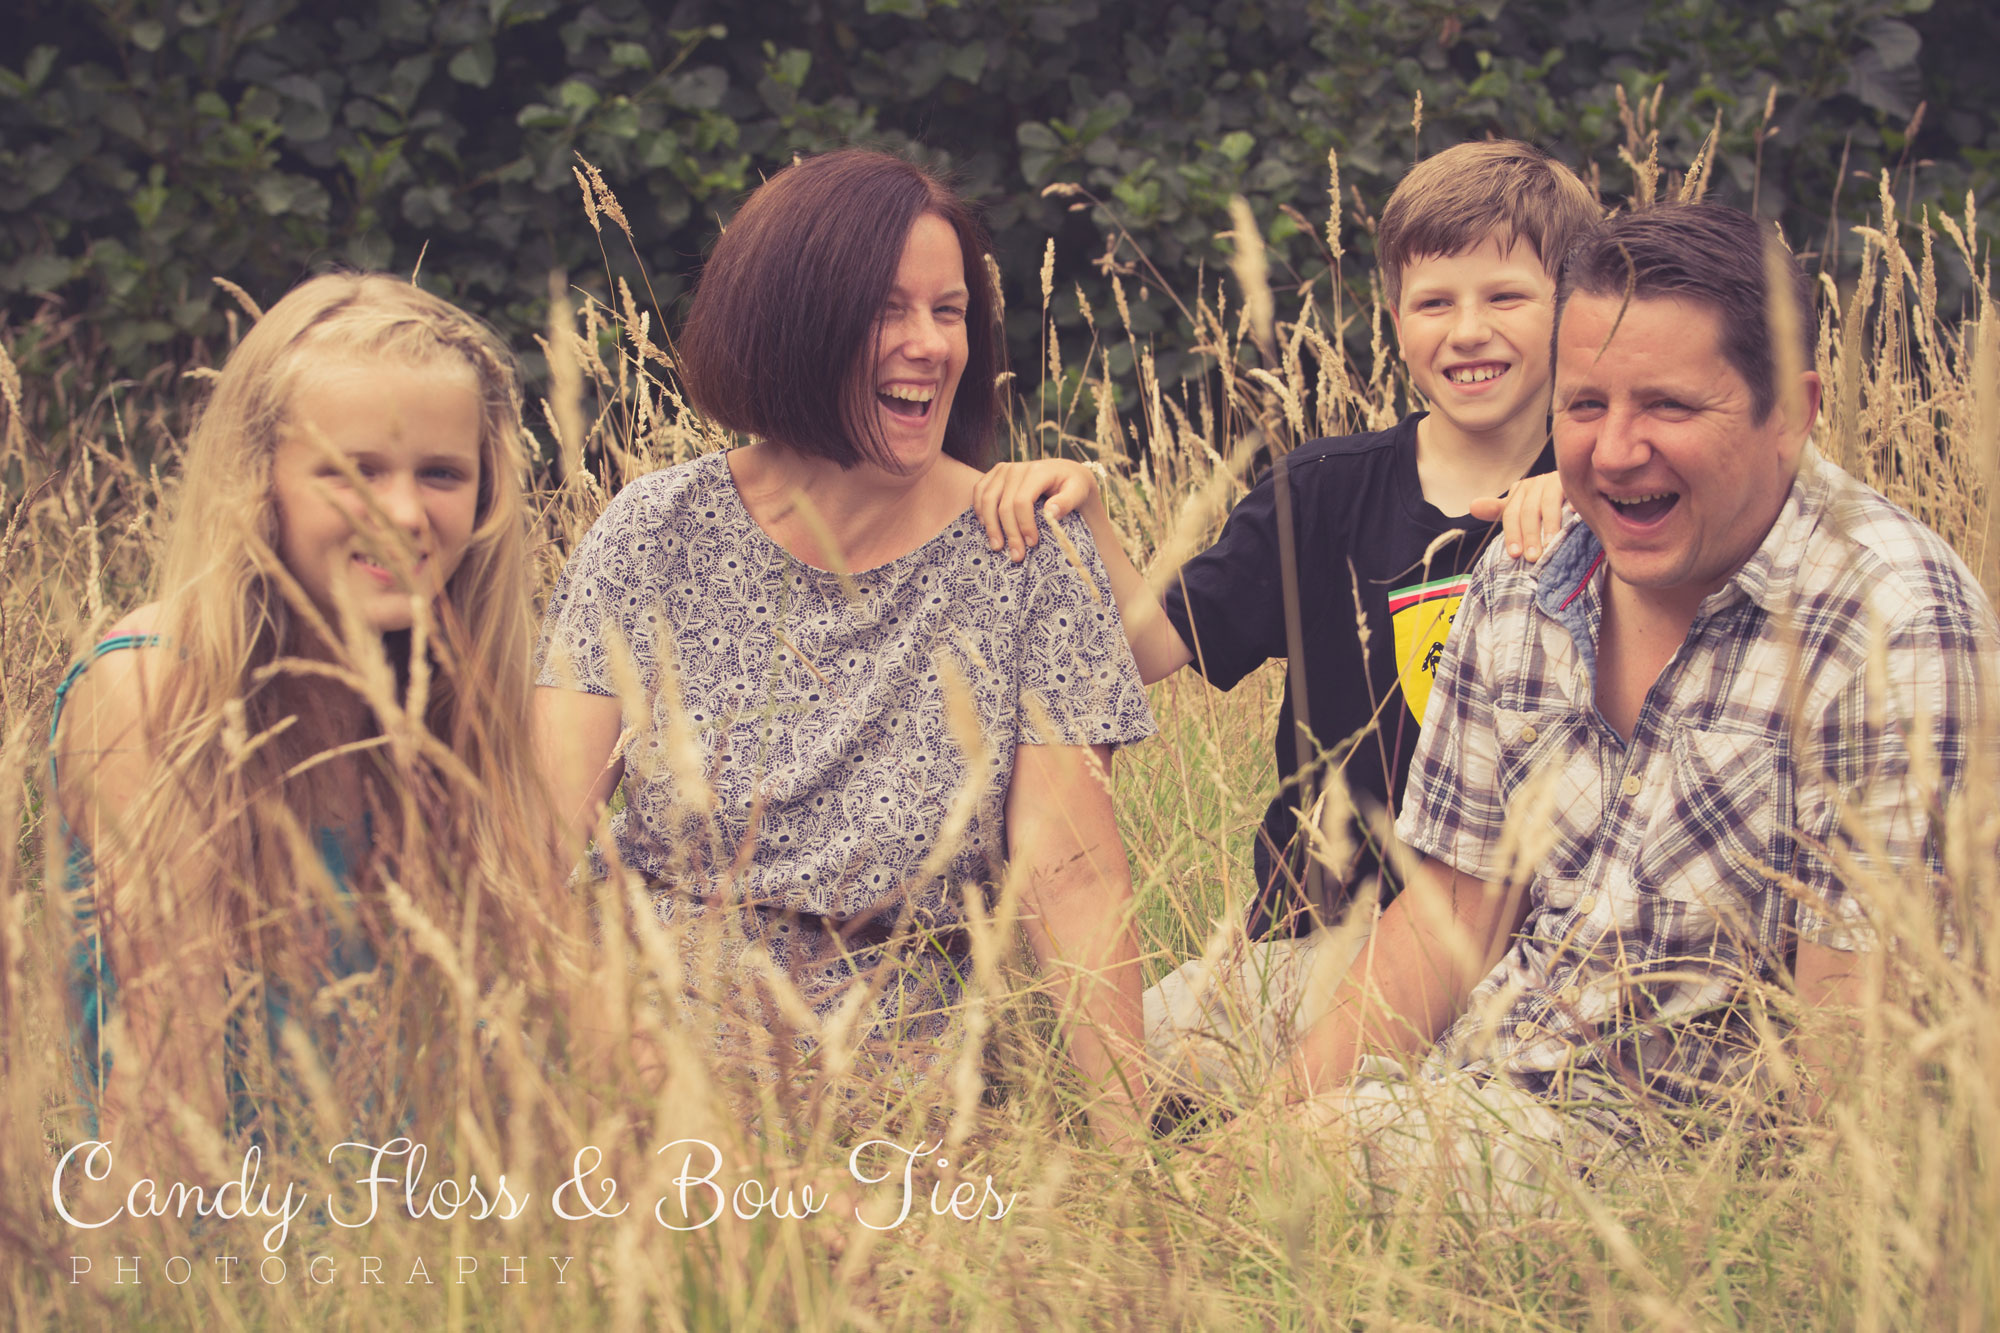 Oake-Family-Photoshoot-Tilgate-106©-Candy-Floss-and-Bow-Ties-Photography